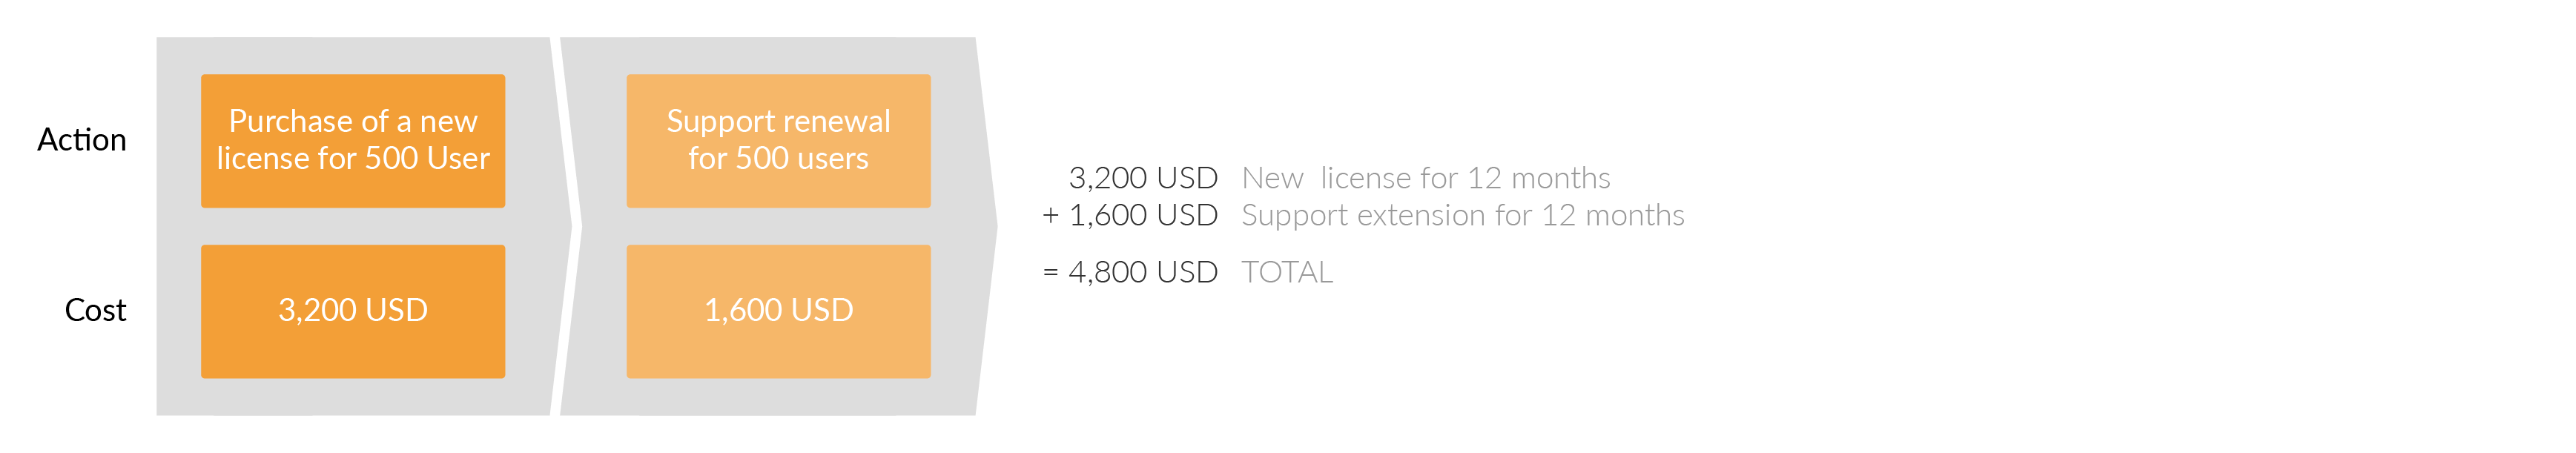 At the end of the first year you need to renew your support. The renewal price is half of the new license price.